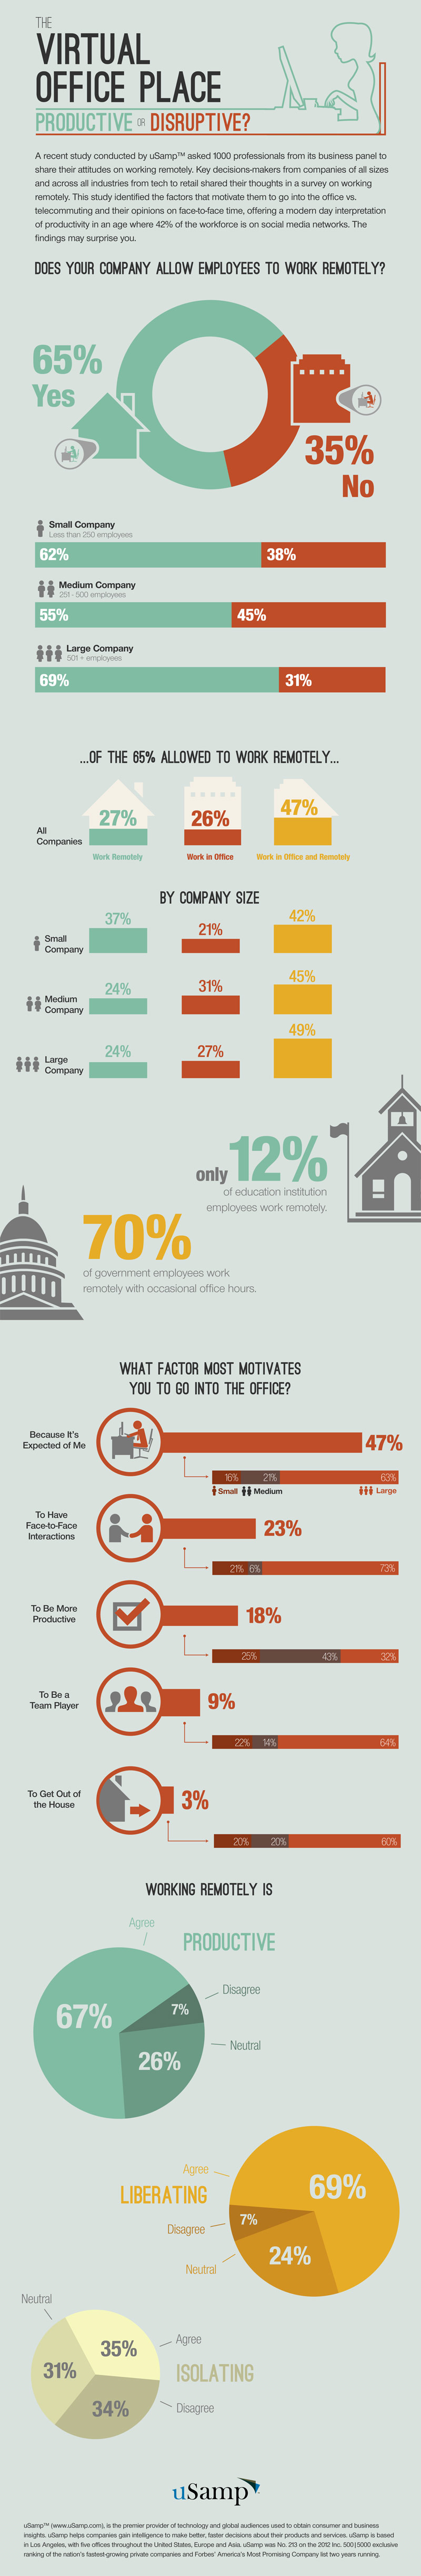 B2B_working_remotely_infographic_final